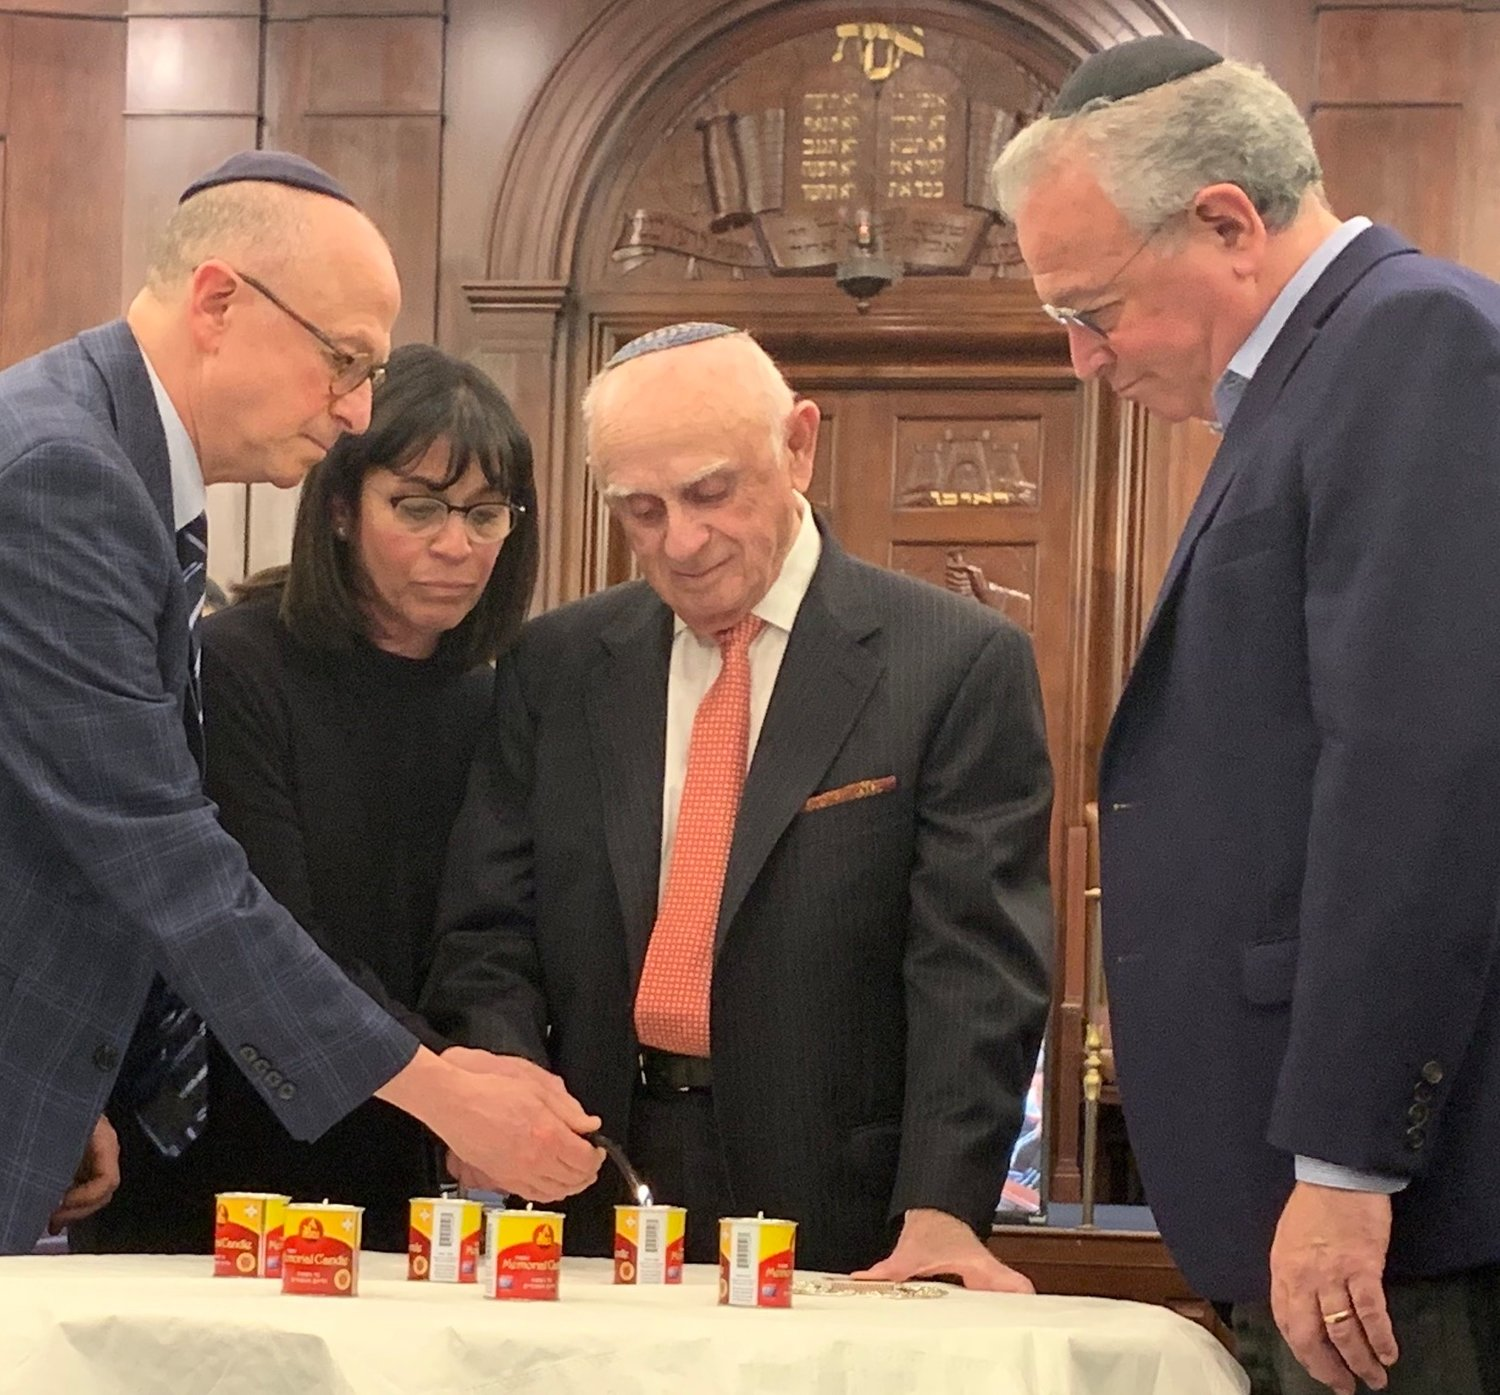 Survivor Mel (Mendel) Klapper lights a memorial candle at Five Towns Holocaust remembrance event, at Congregation Beth Sholom in Lawrence, March 1, 2019.